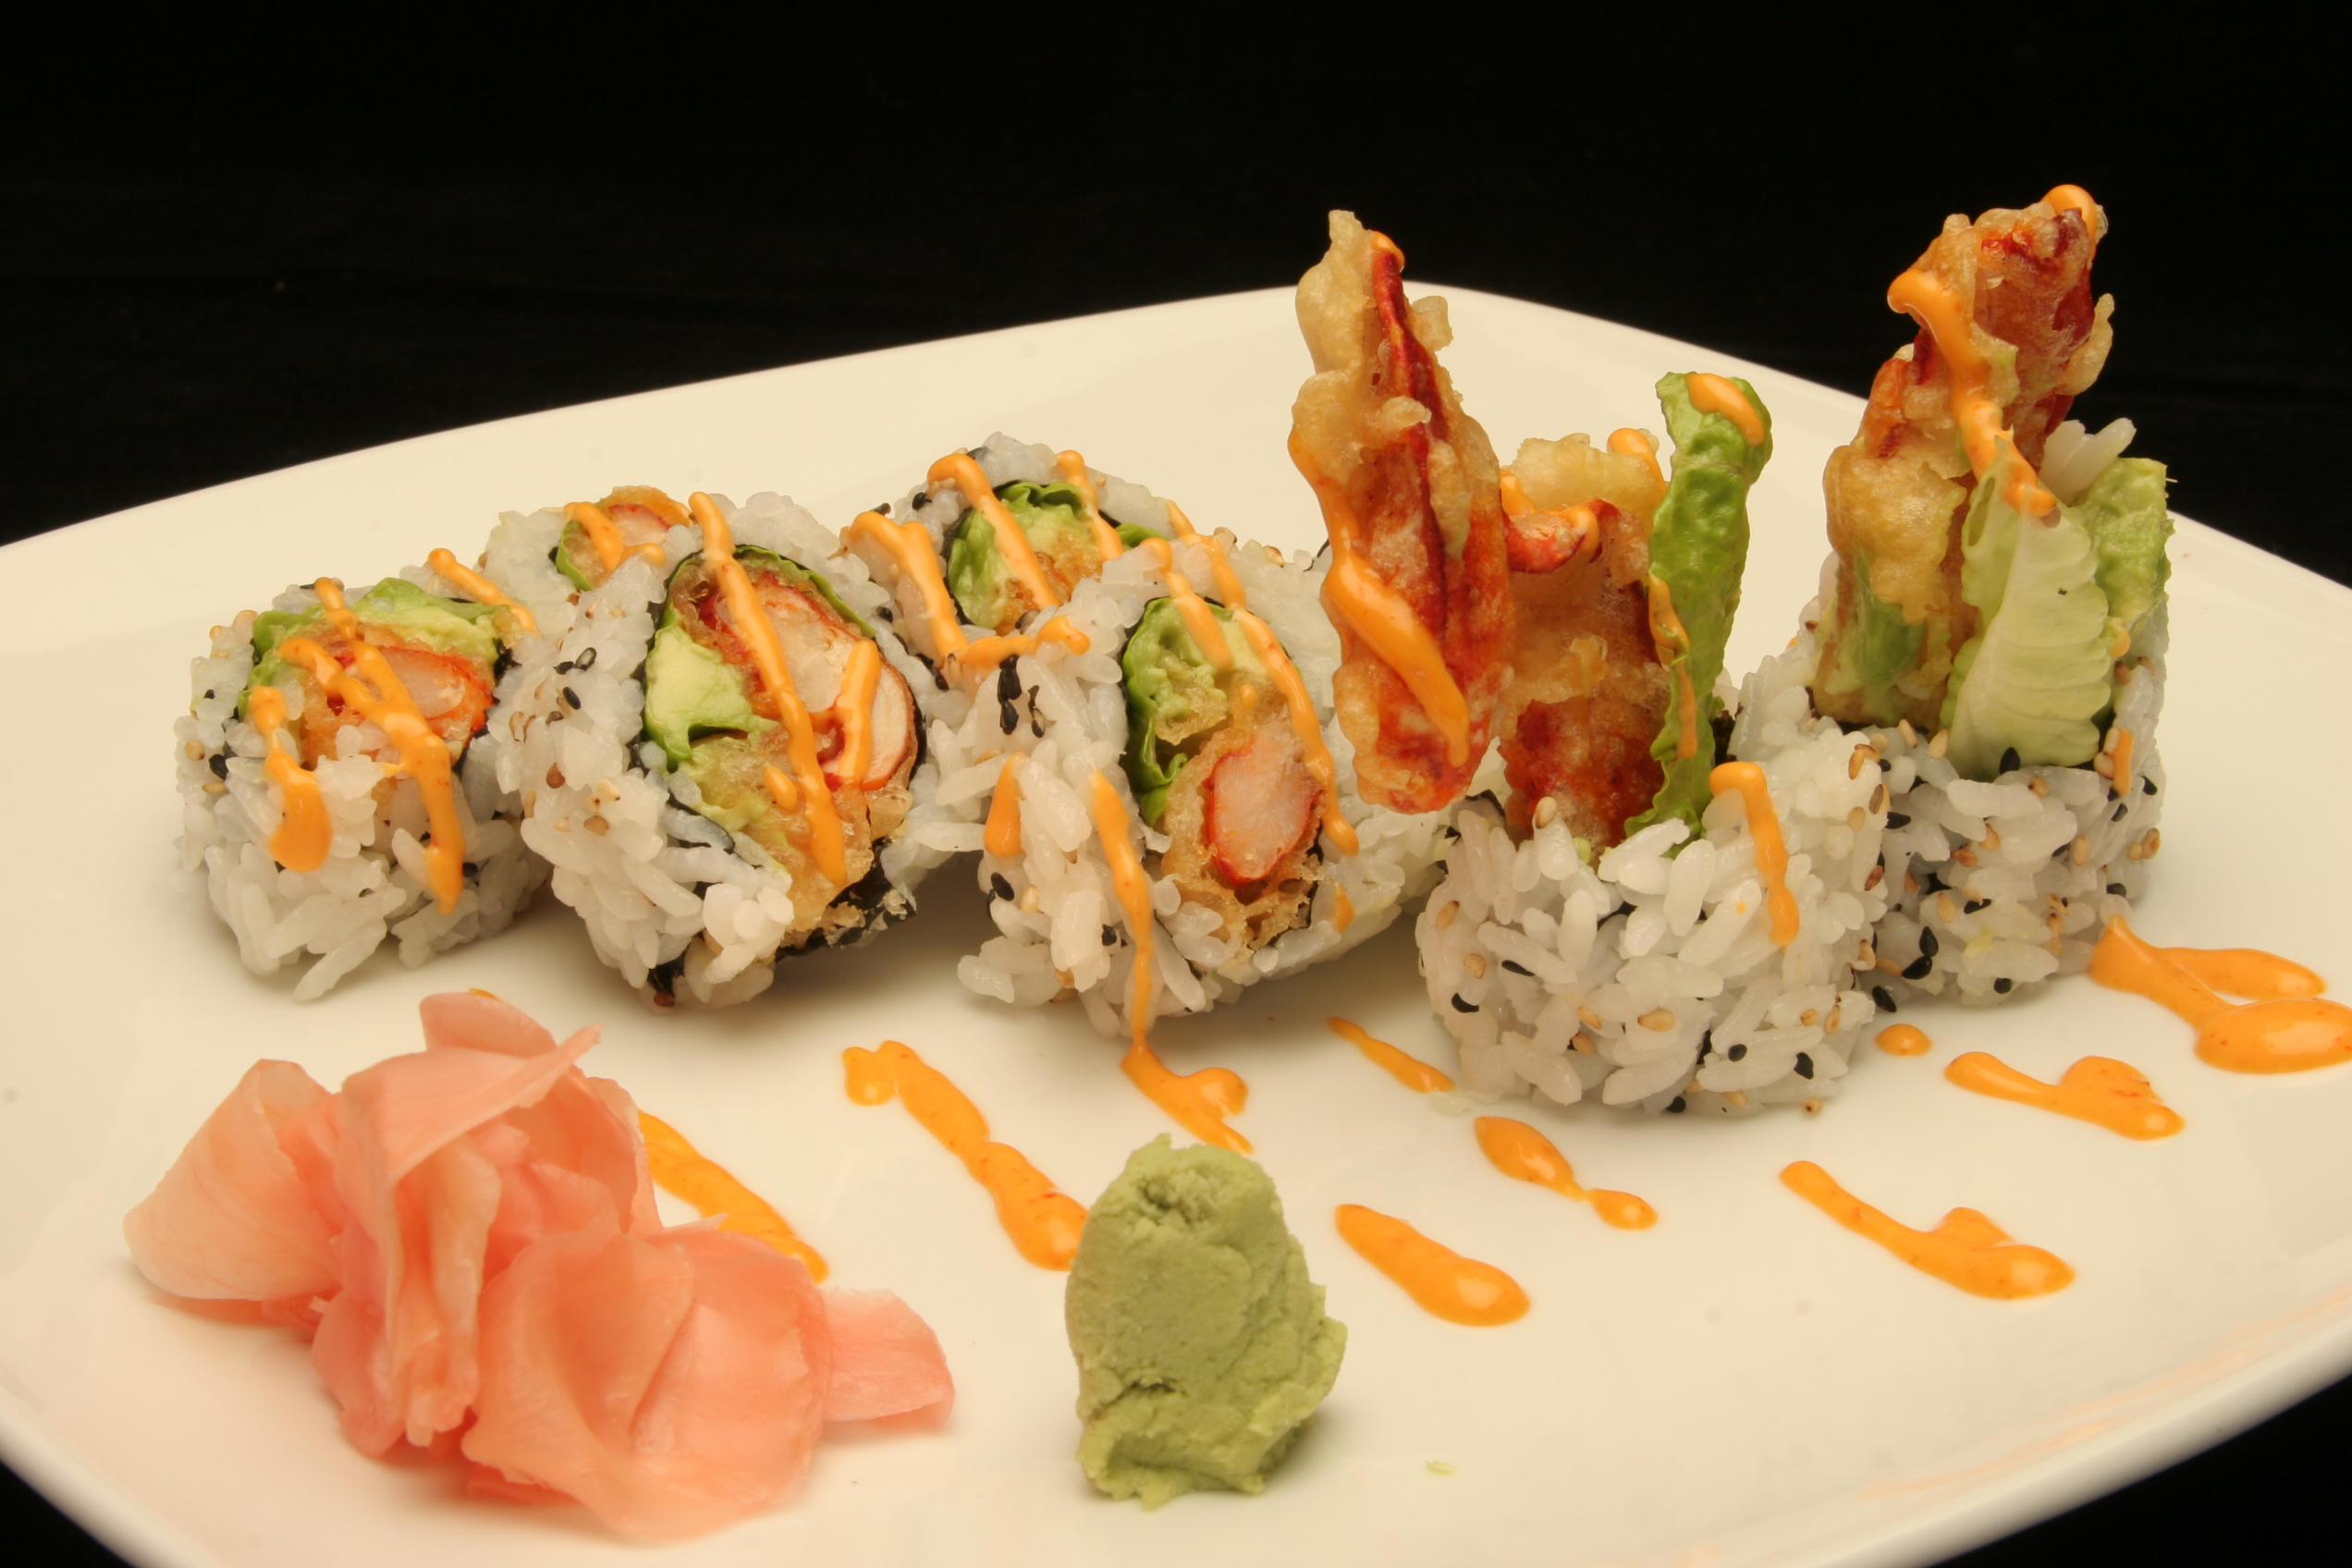 Spicy Dynamite Roll (Spicy Shrimp Tempura Roll)